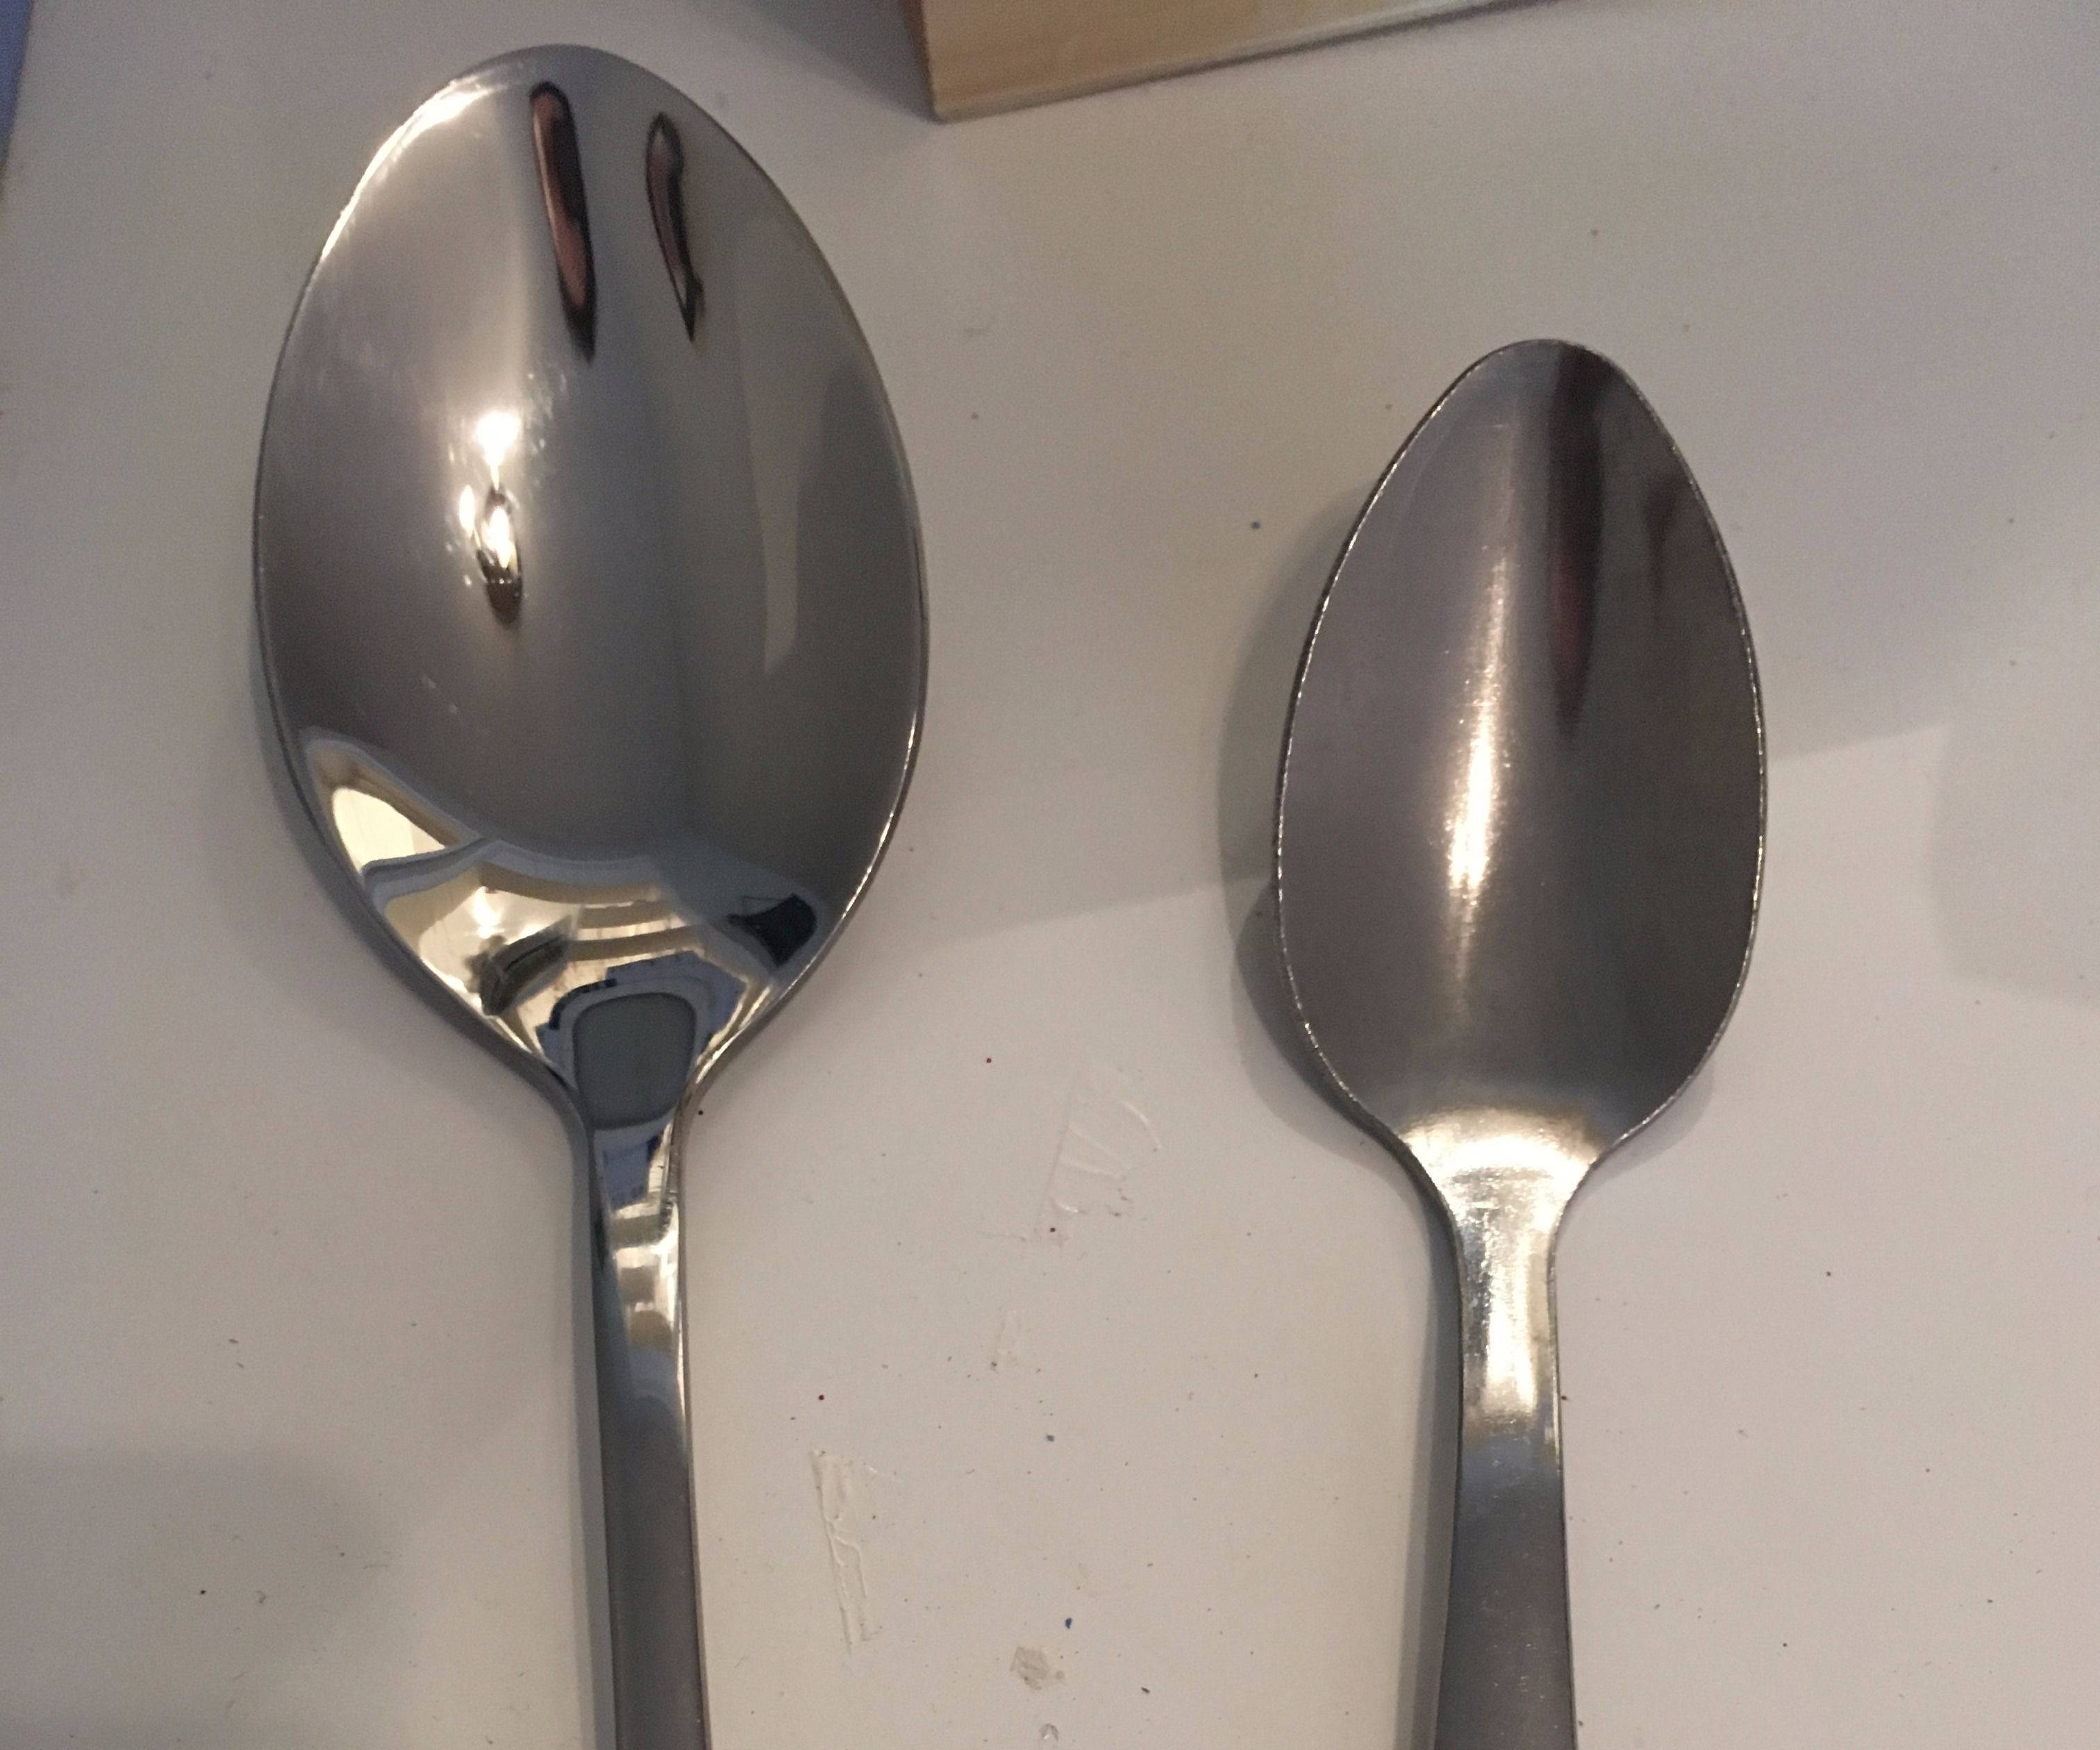 Spoons in a Frame